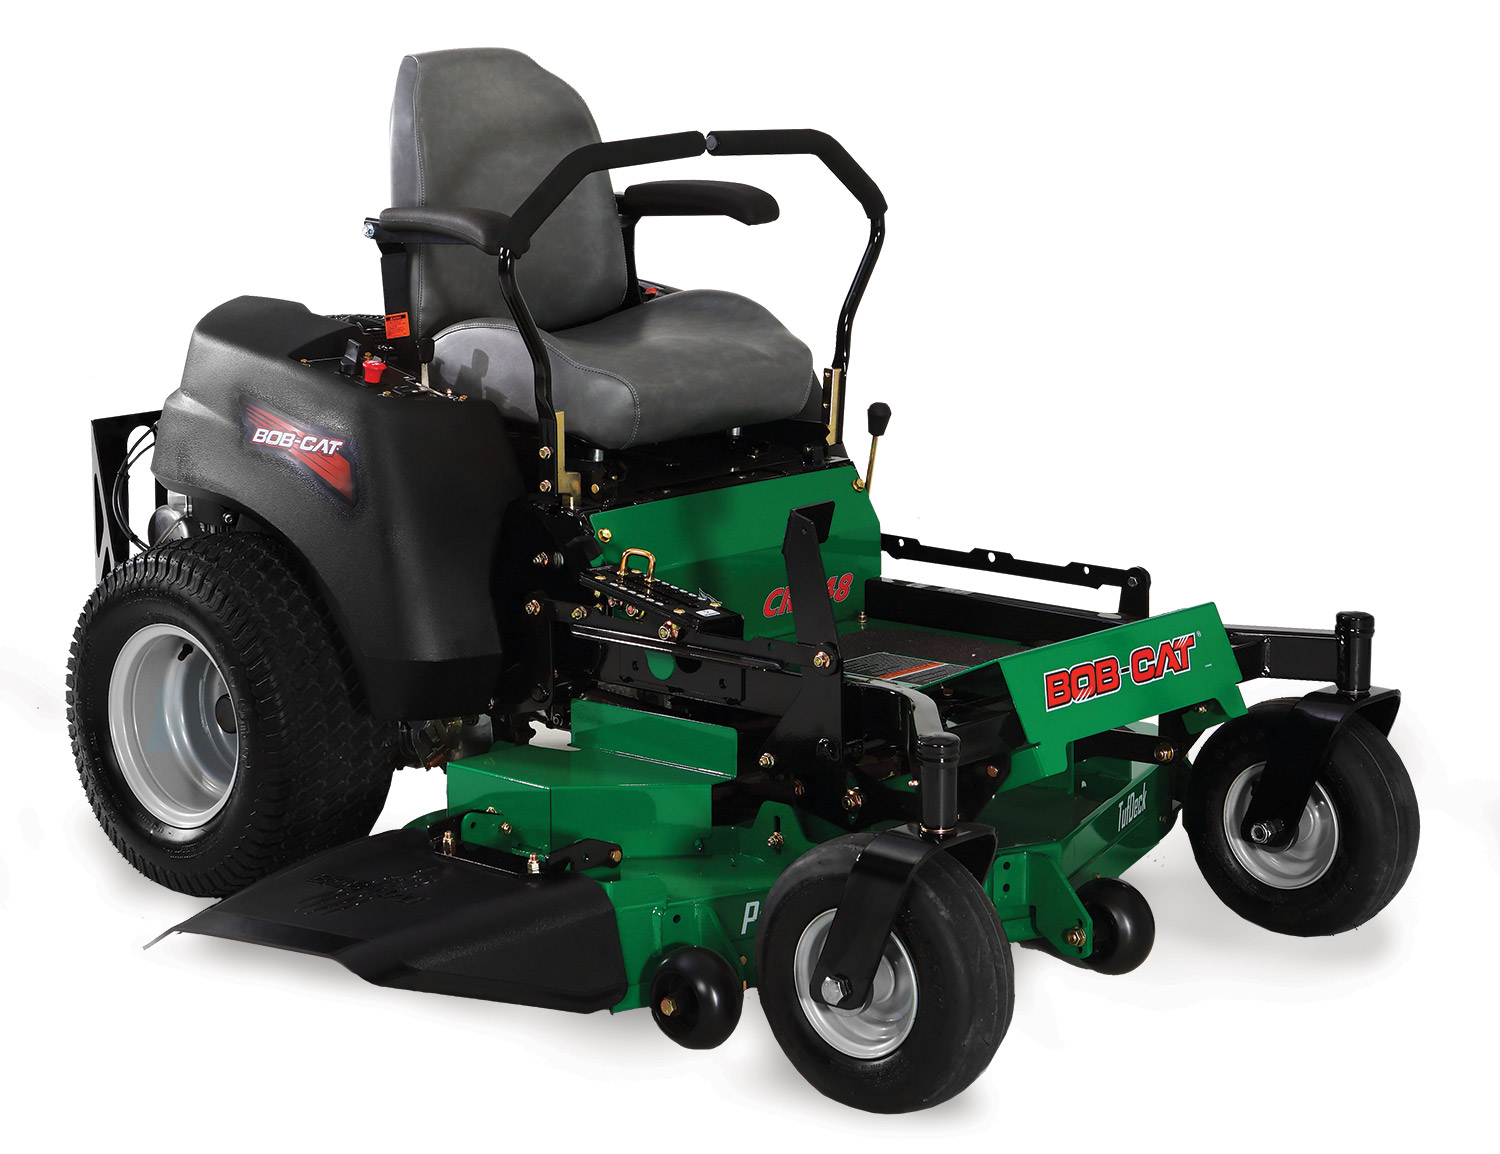 The updated Bob-Cat CRZ mower has a new seat and rear bumper, among